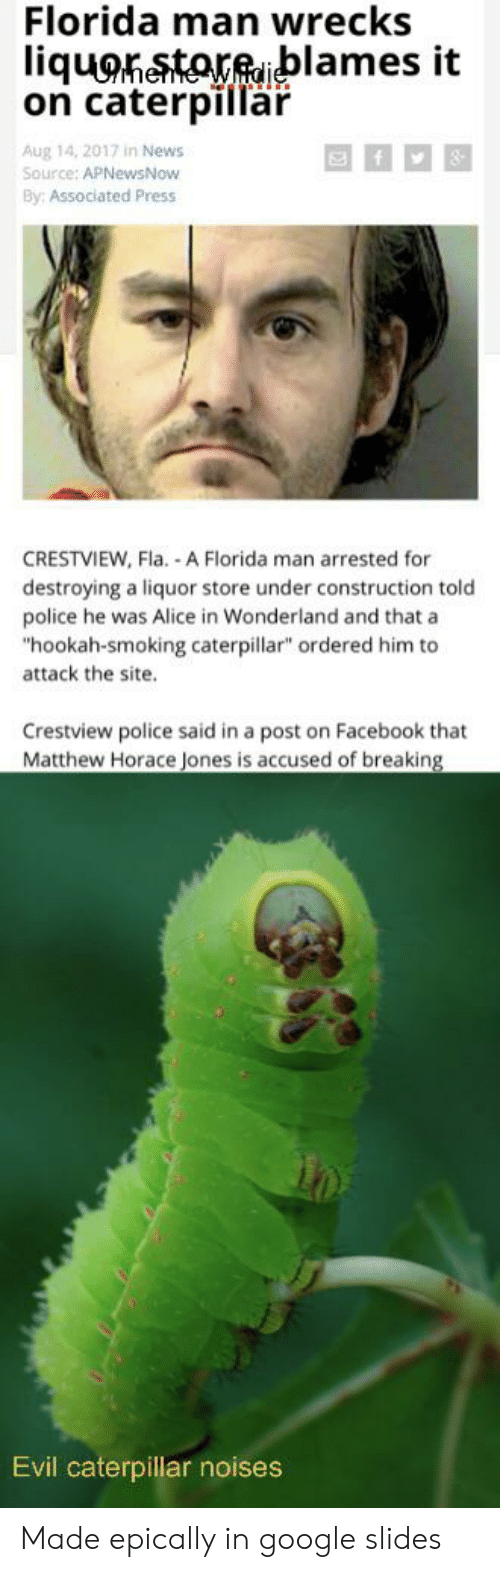 "Facebook, Florida Man, and Google: Florida man wrecks  liquonetoreblames it  on caterpillar  Aug 14, 2017 in News  Source: APNewsNow  By: Associated Press  CRESTVIEW, Fla. A Florida man arrested for  destroying a liquor store under construction told  police he was Alice in Wonderland and that a  ""hookah-smoking caterpillar"" ordered him to  attack the site.  Crestview police said in a post on Facebook that  Matthew Horace Jones is accused of breaking  Evil caterpillar noises Made epically in google slides"